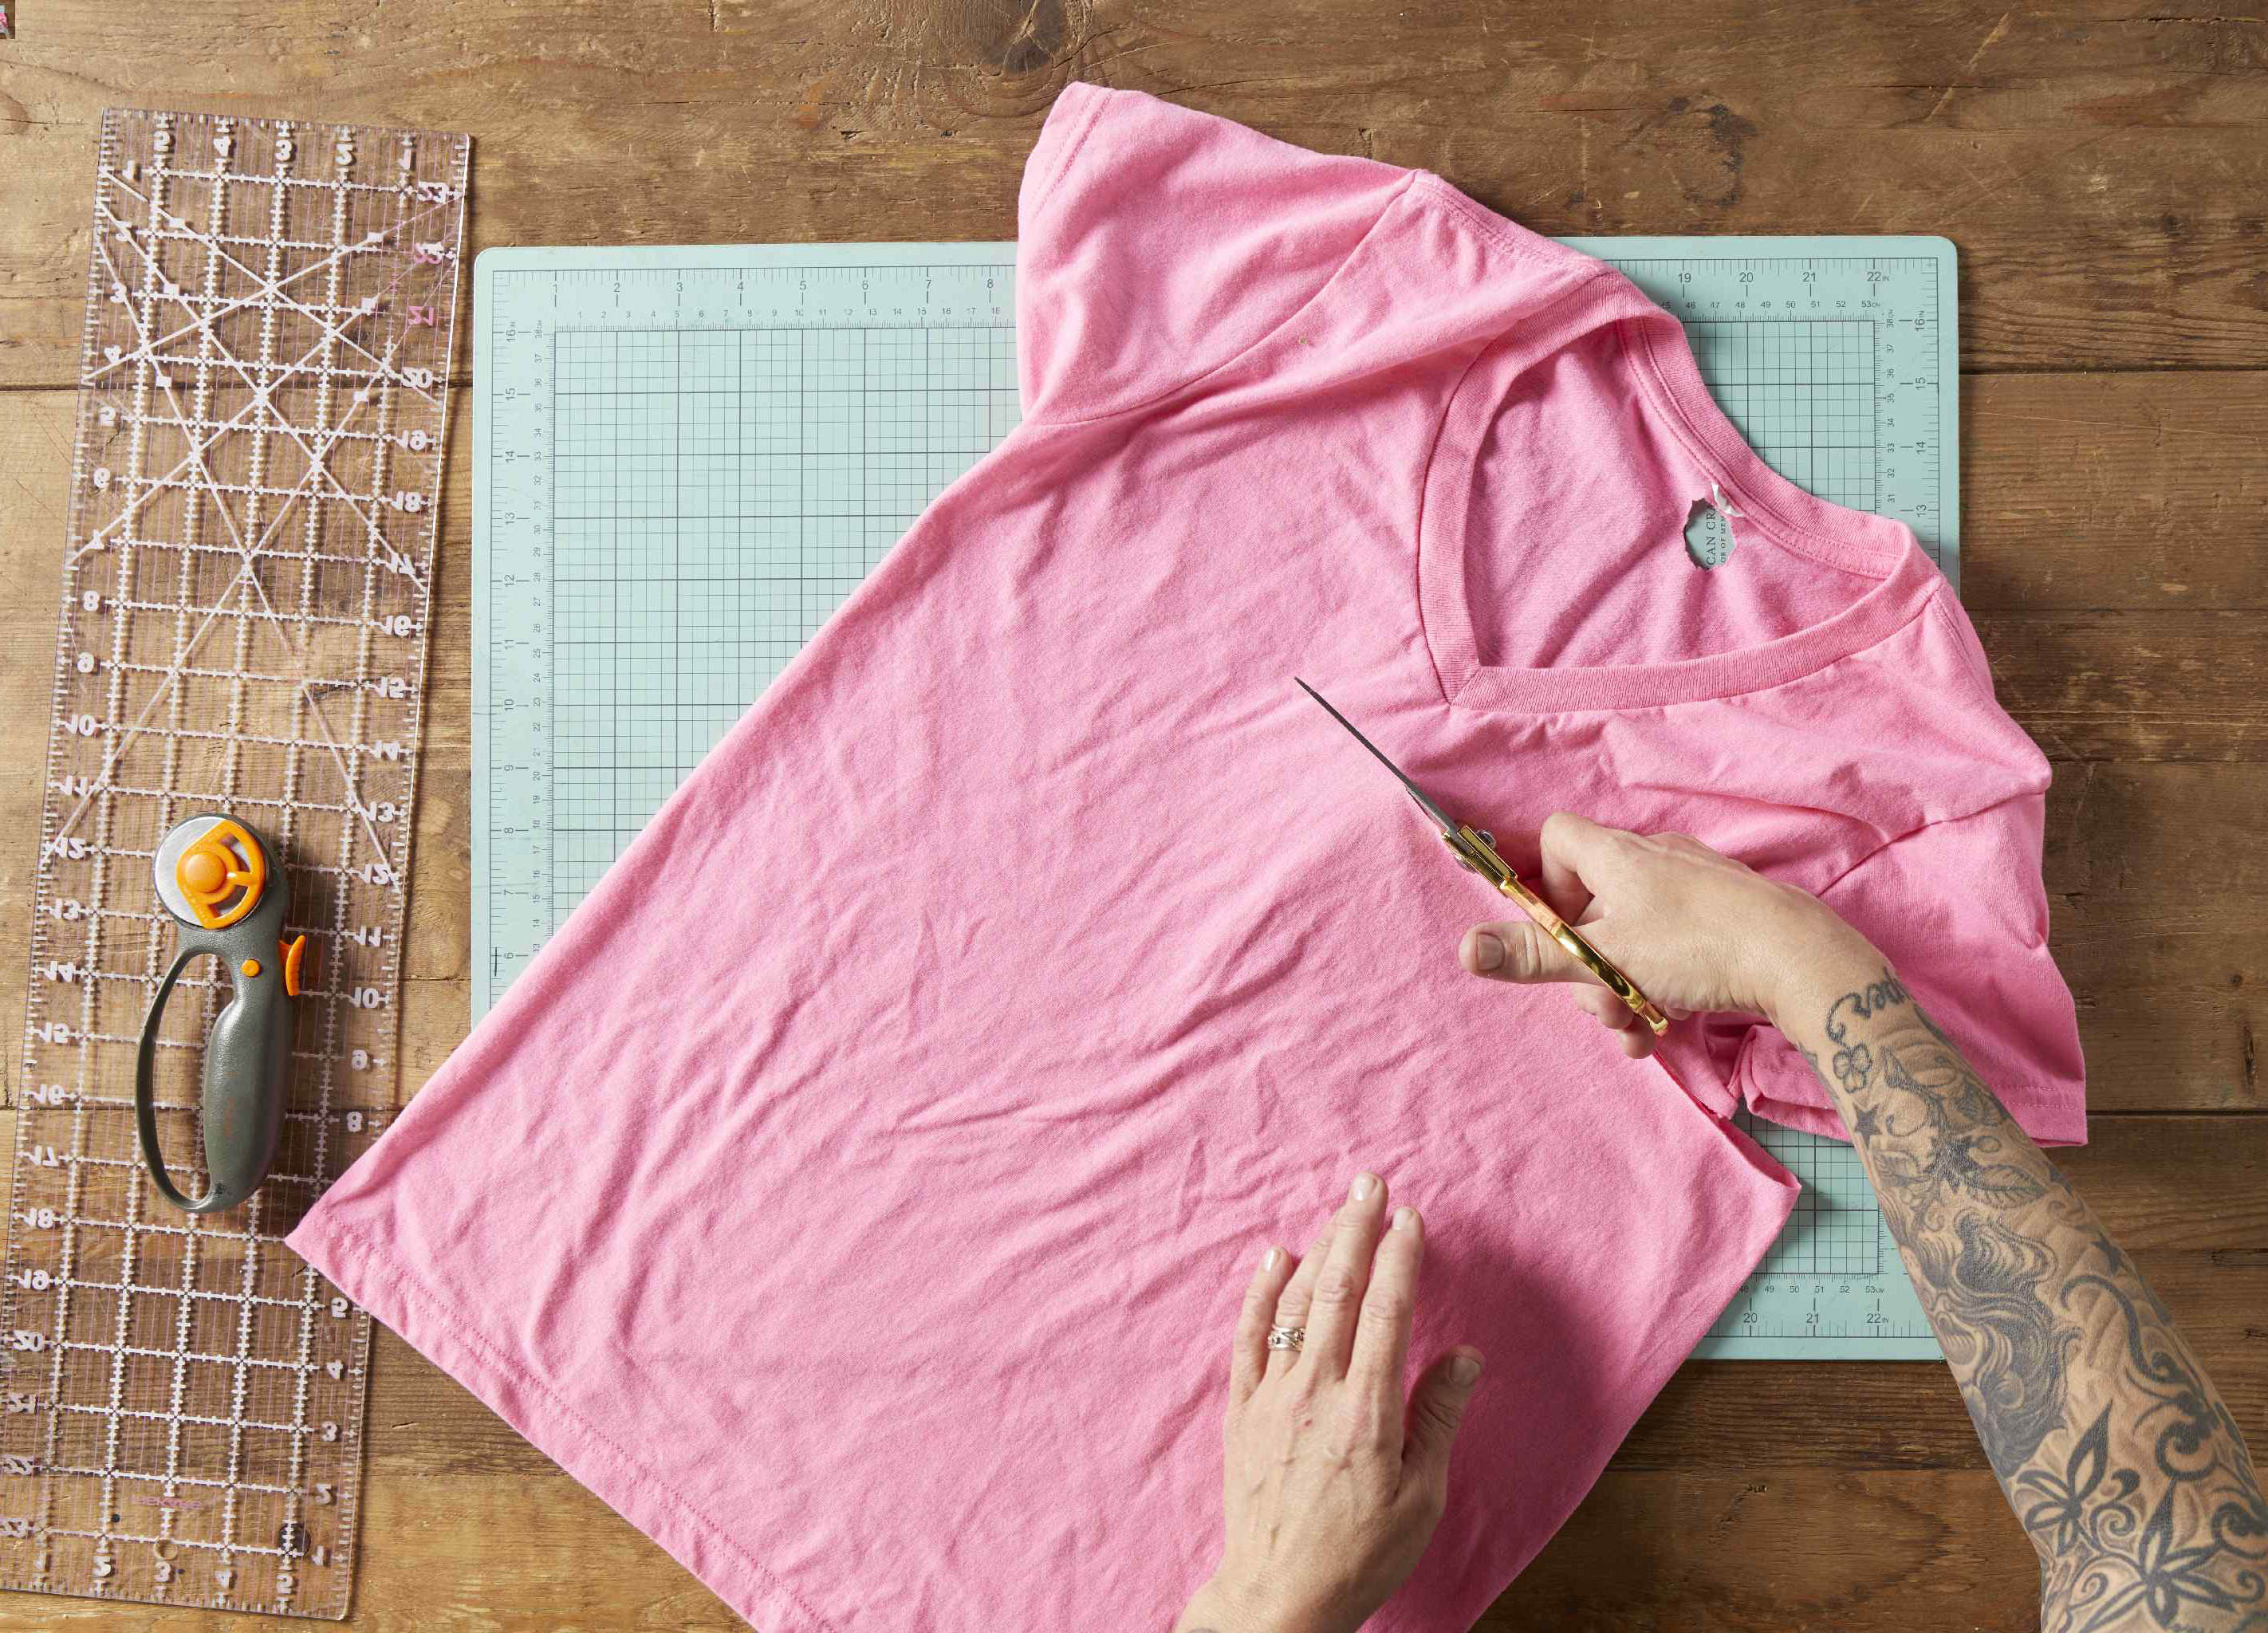 Cutting a pink shirt for a DIY dog toy